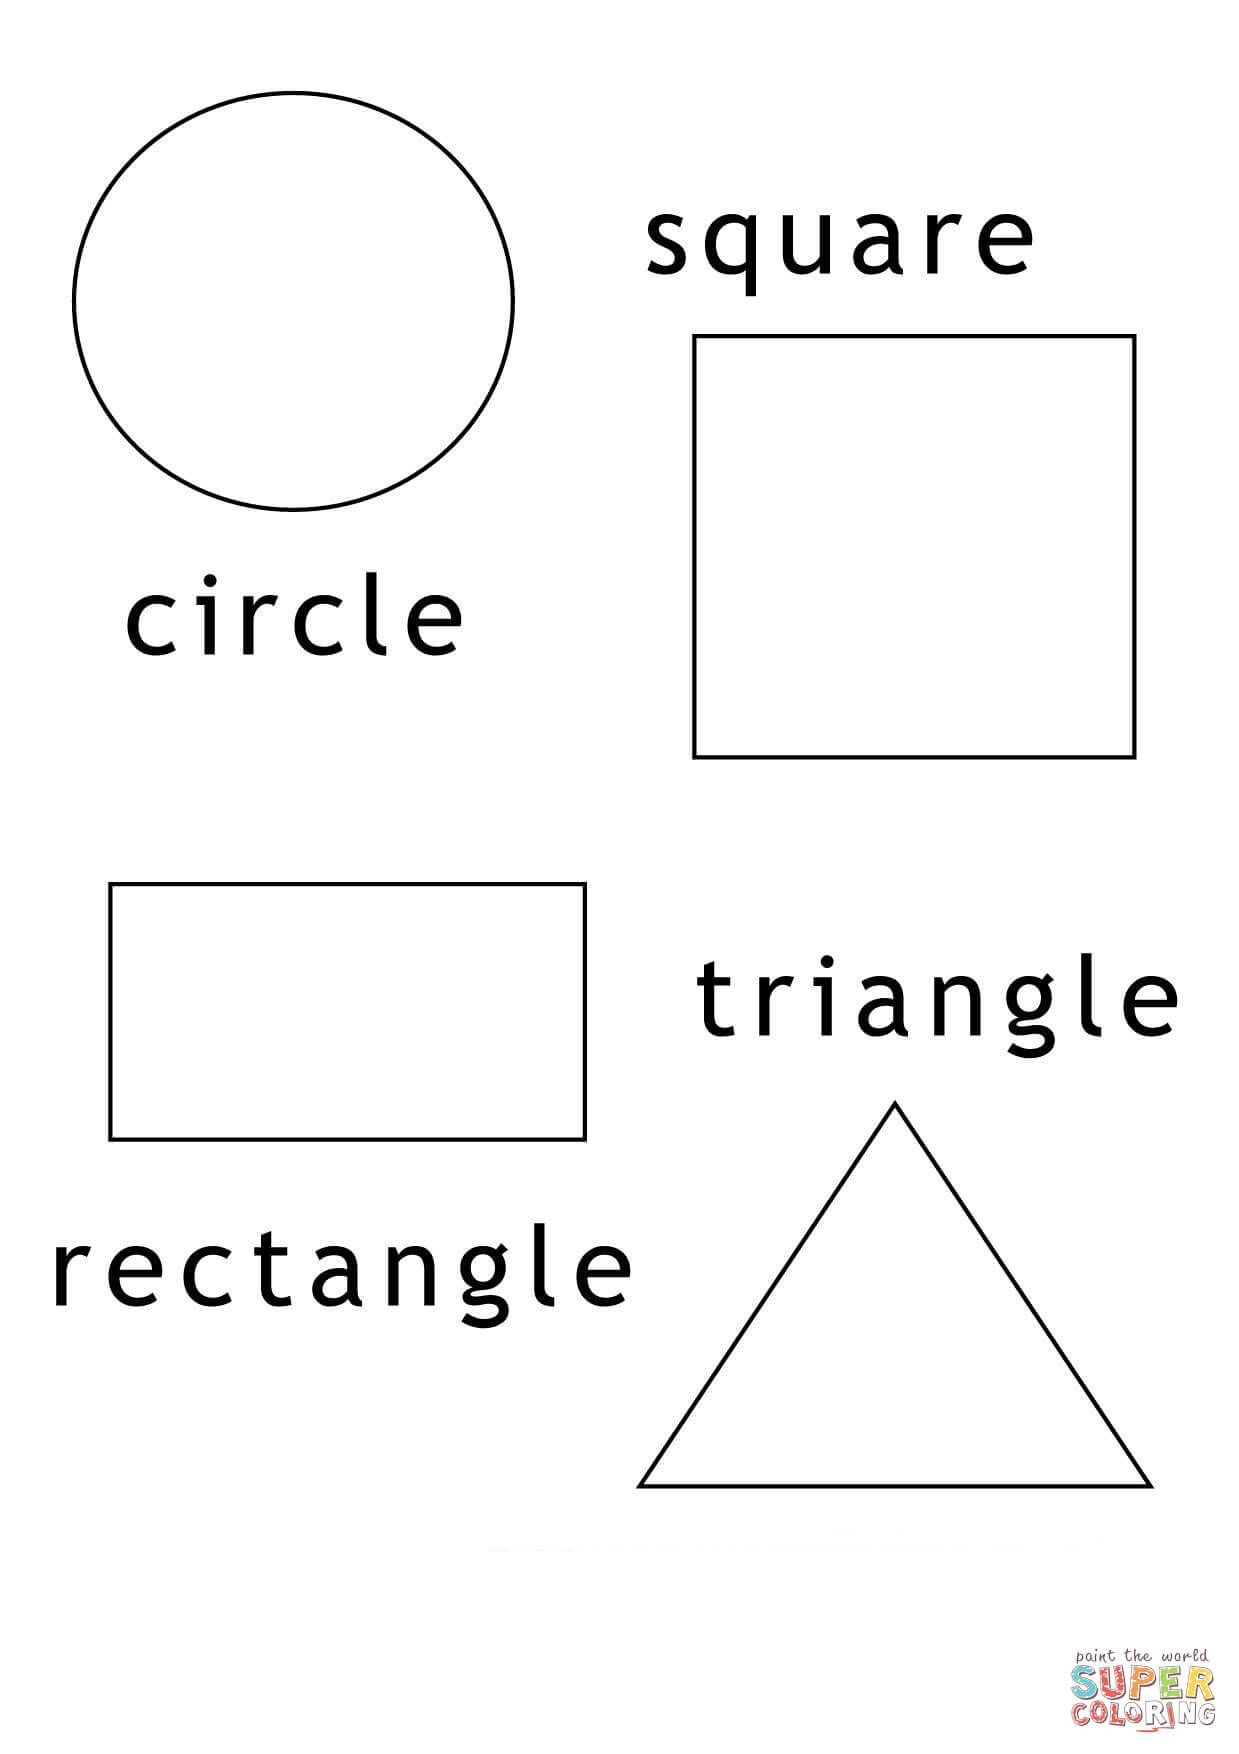 Basic Geometric Shapes coloring page from Shapes category